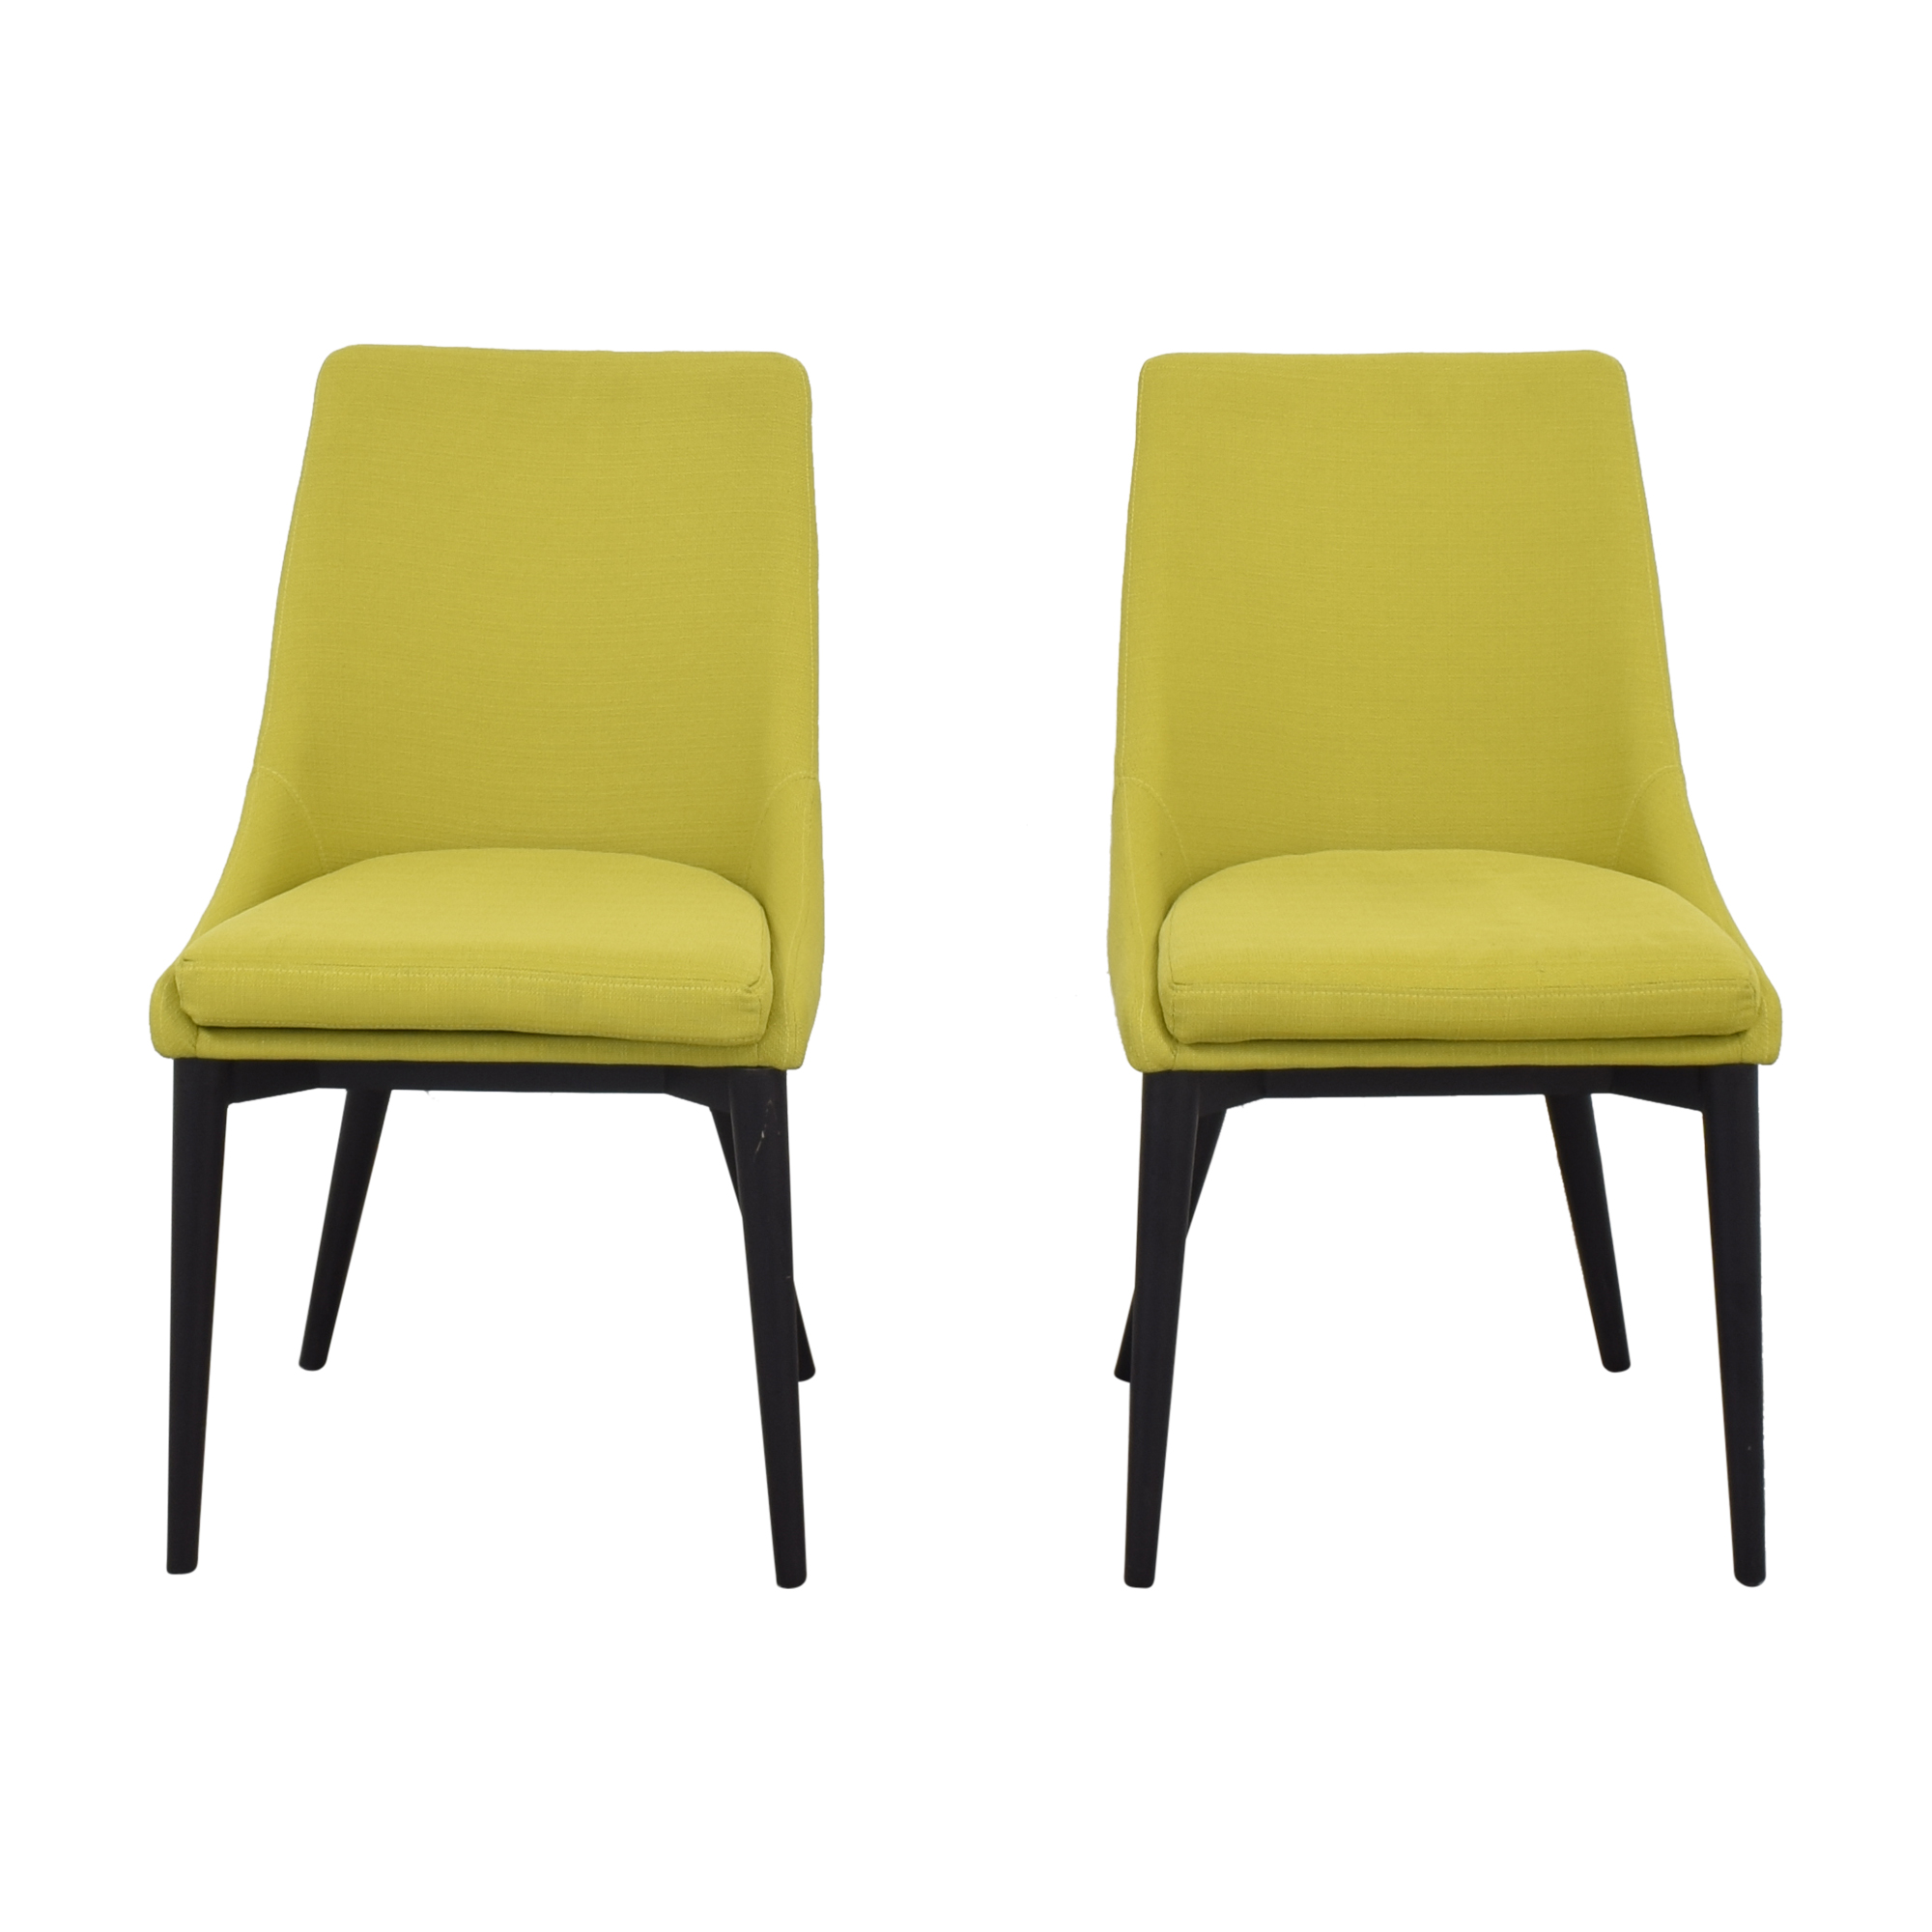 Modway Modway Viscount Dining Chairs